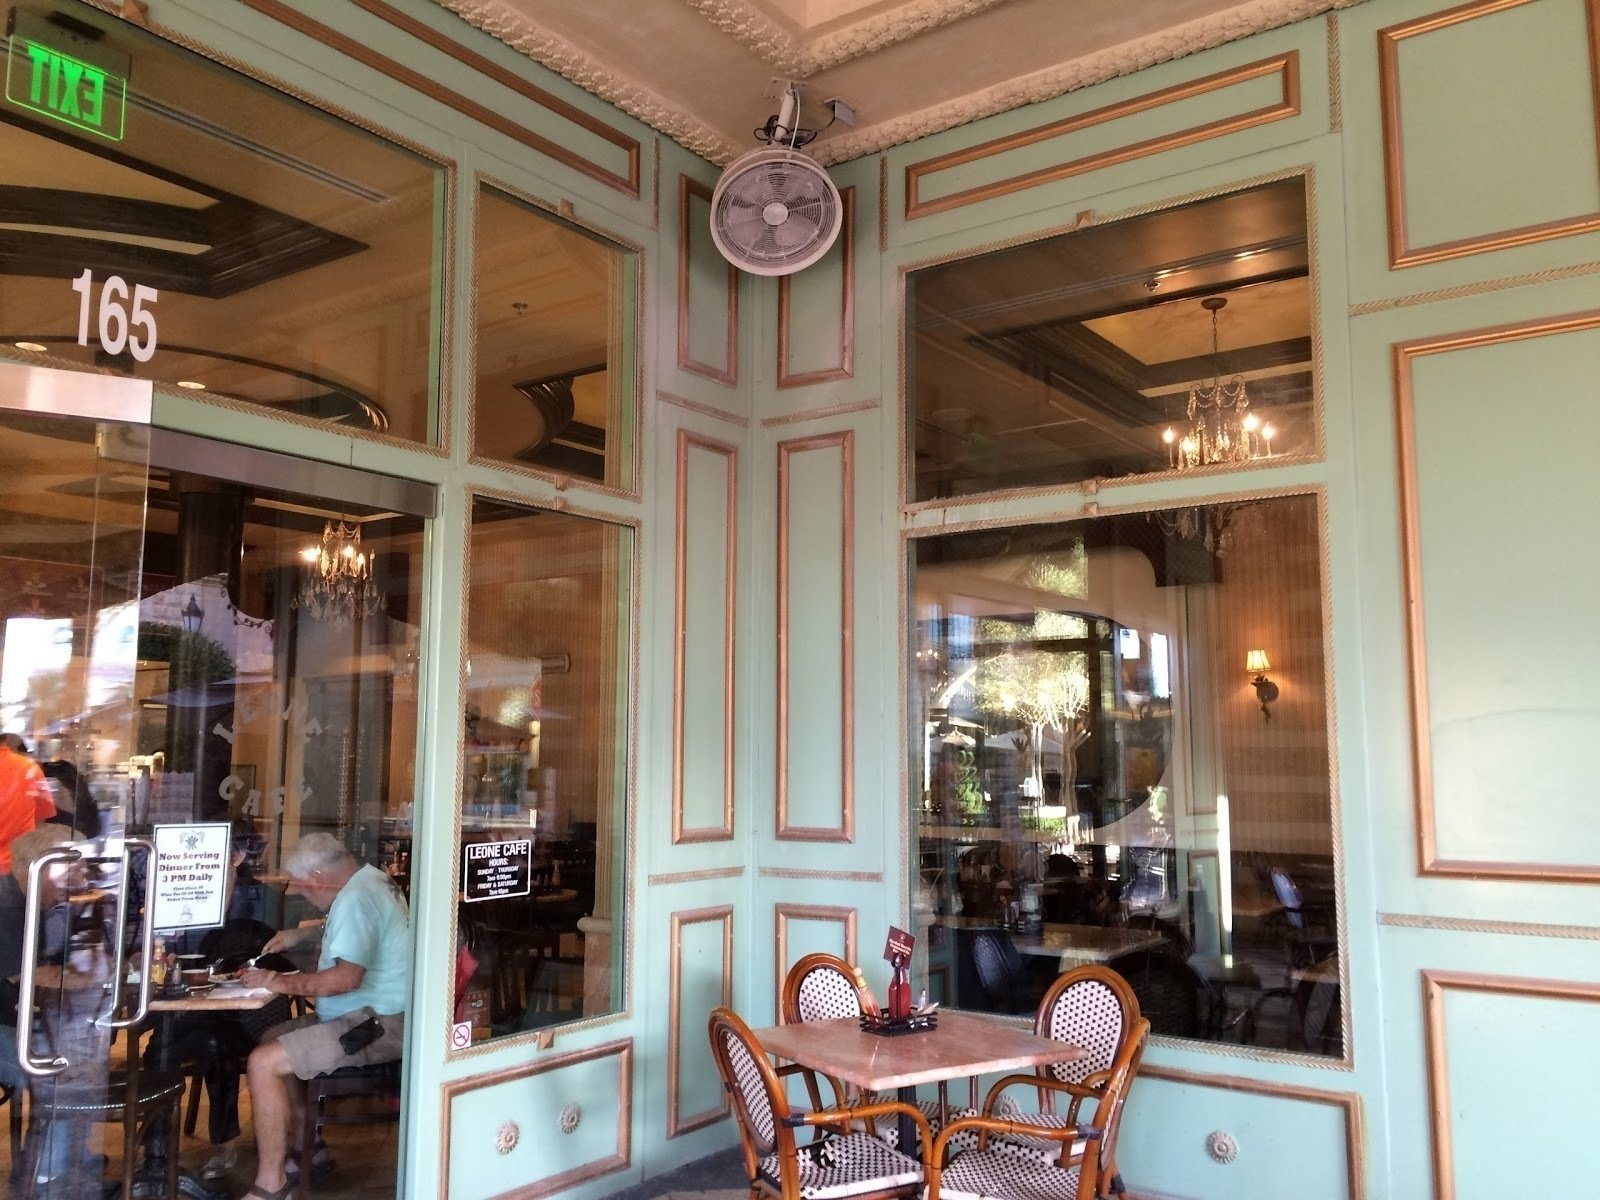 Leone Café: A Work-Friendly Place in Las Vegas